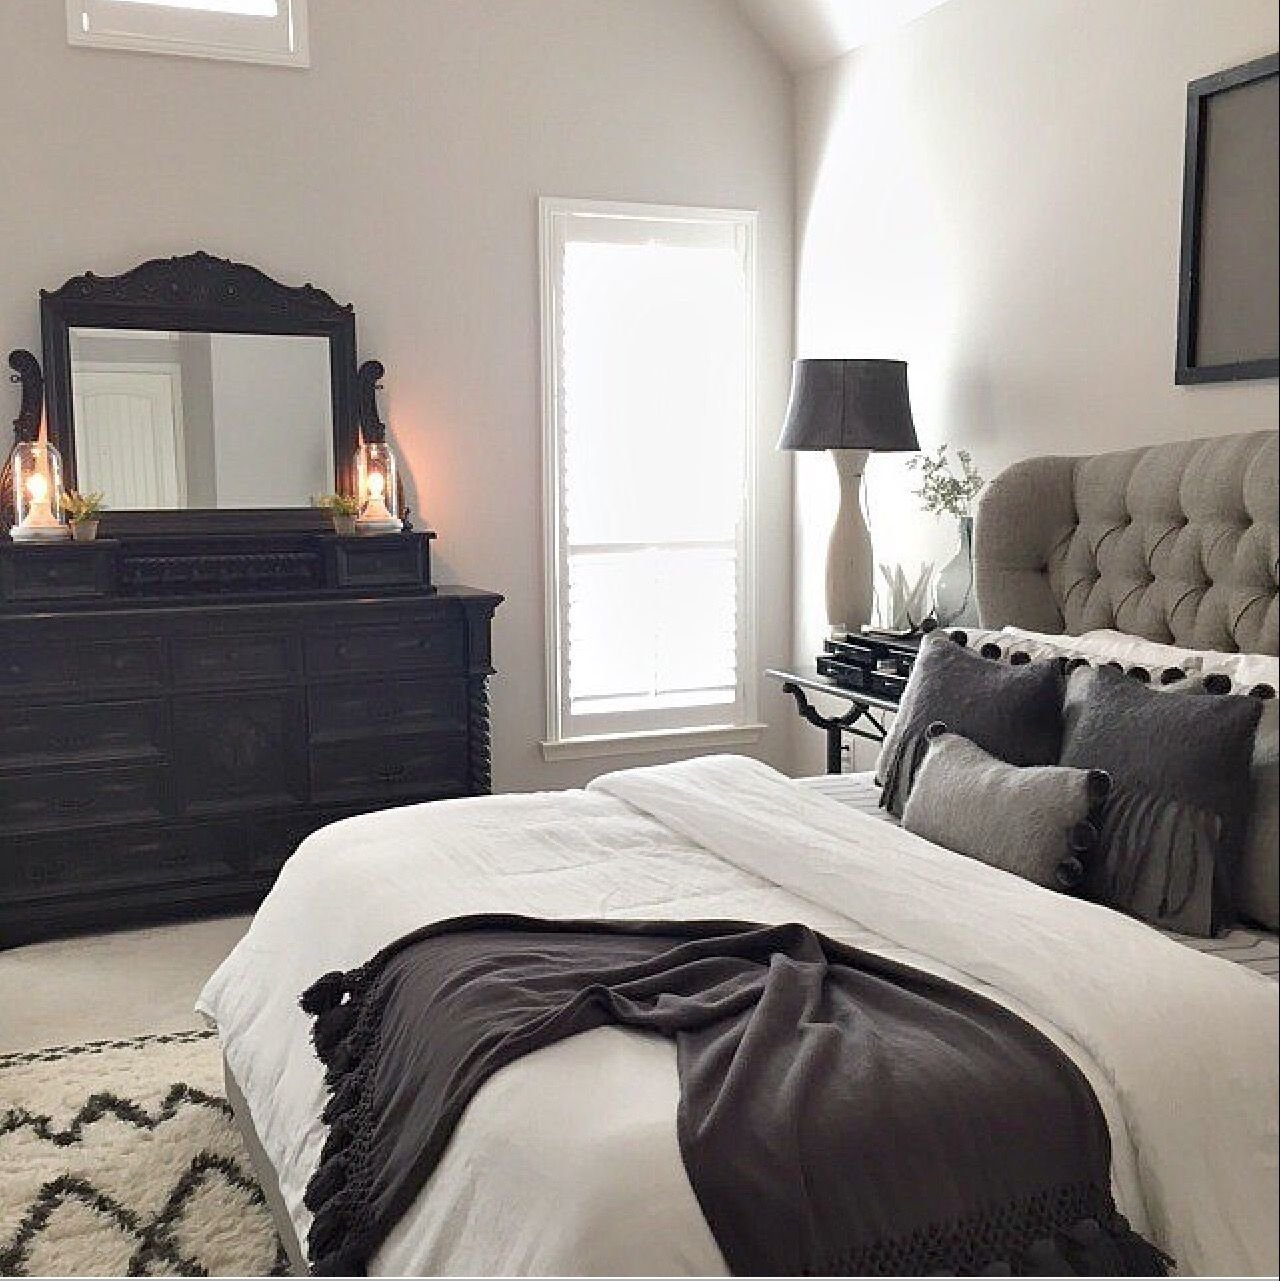 10 Attractive Bedroom Ideas With Black Furniture master bed tufted grey headboard future house decor pinterest 2021